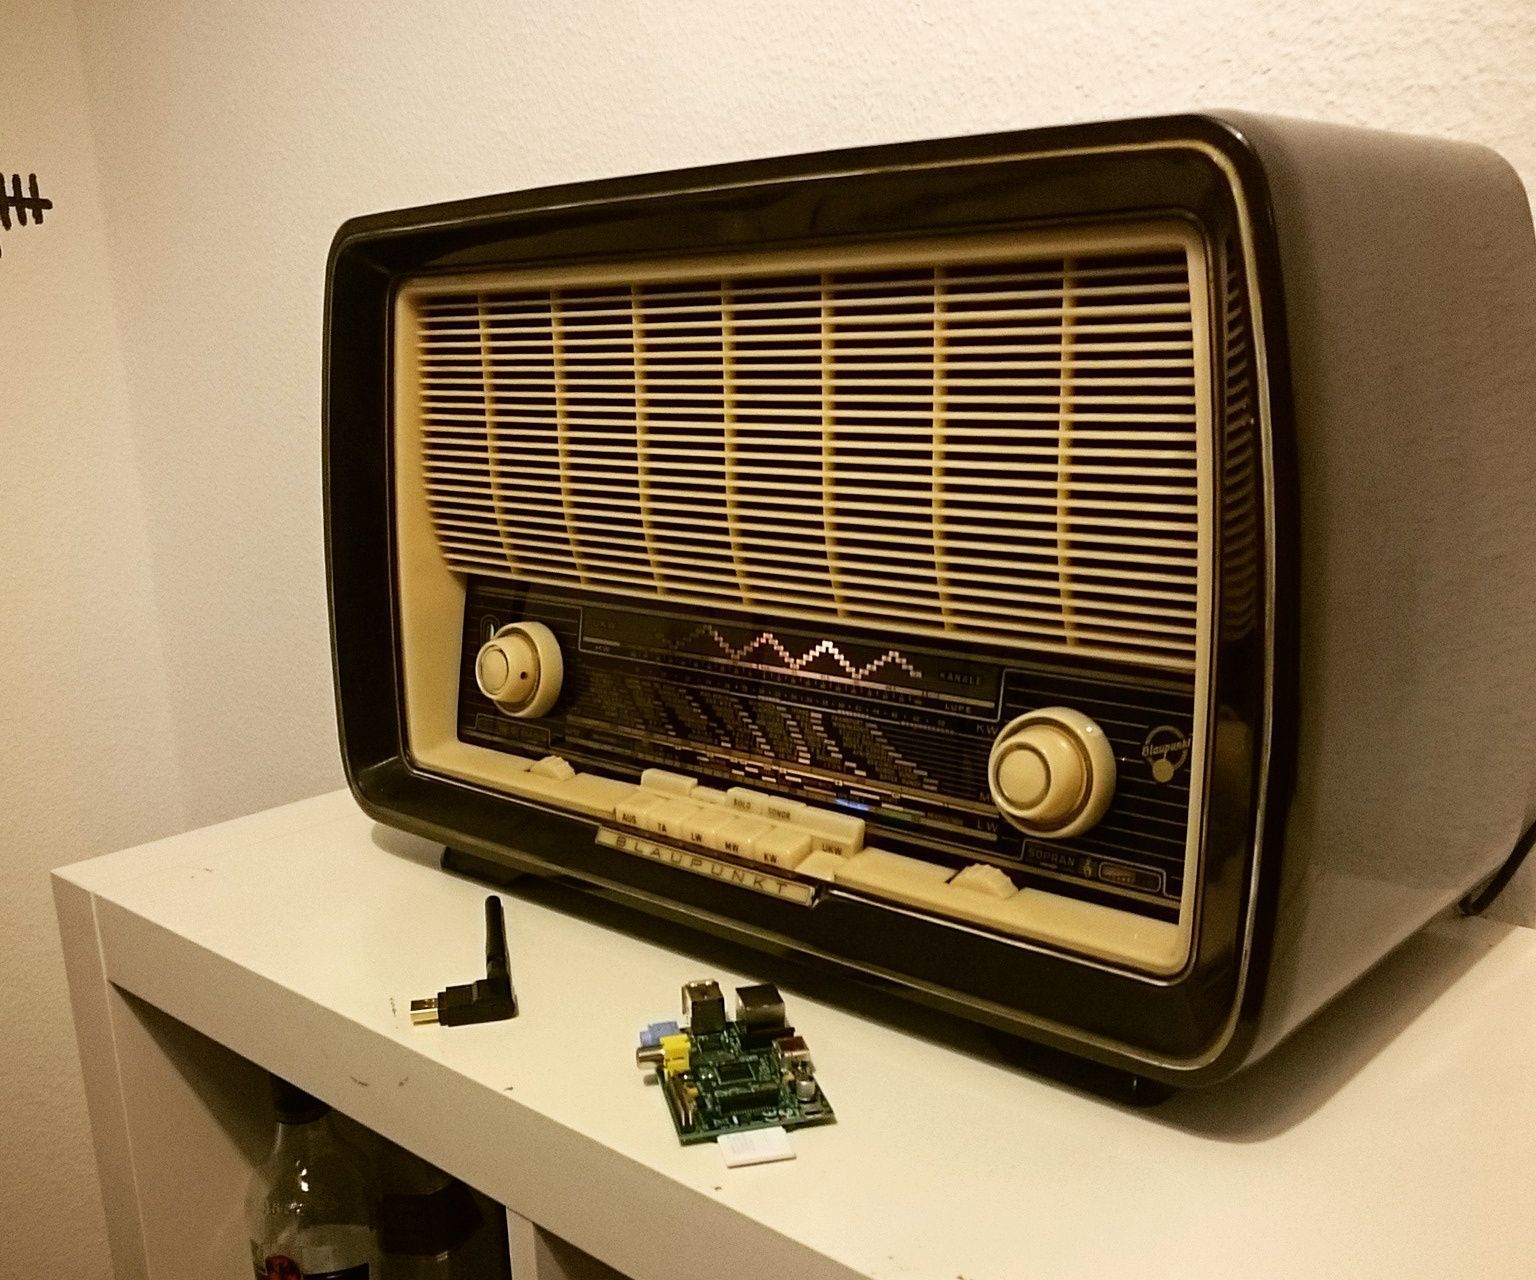 Converting An Old Radio Into A Spotify Streaming Box Old Radios Diy Bluetooth Speaker Spotify Streaming